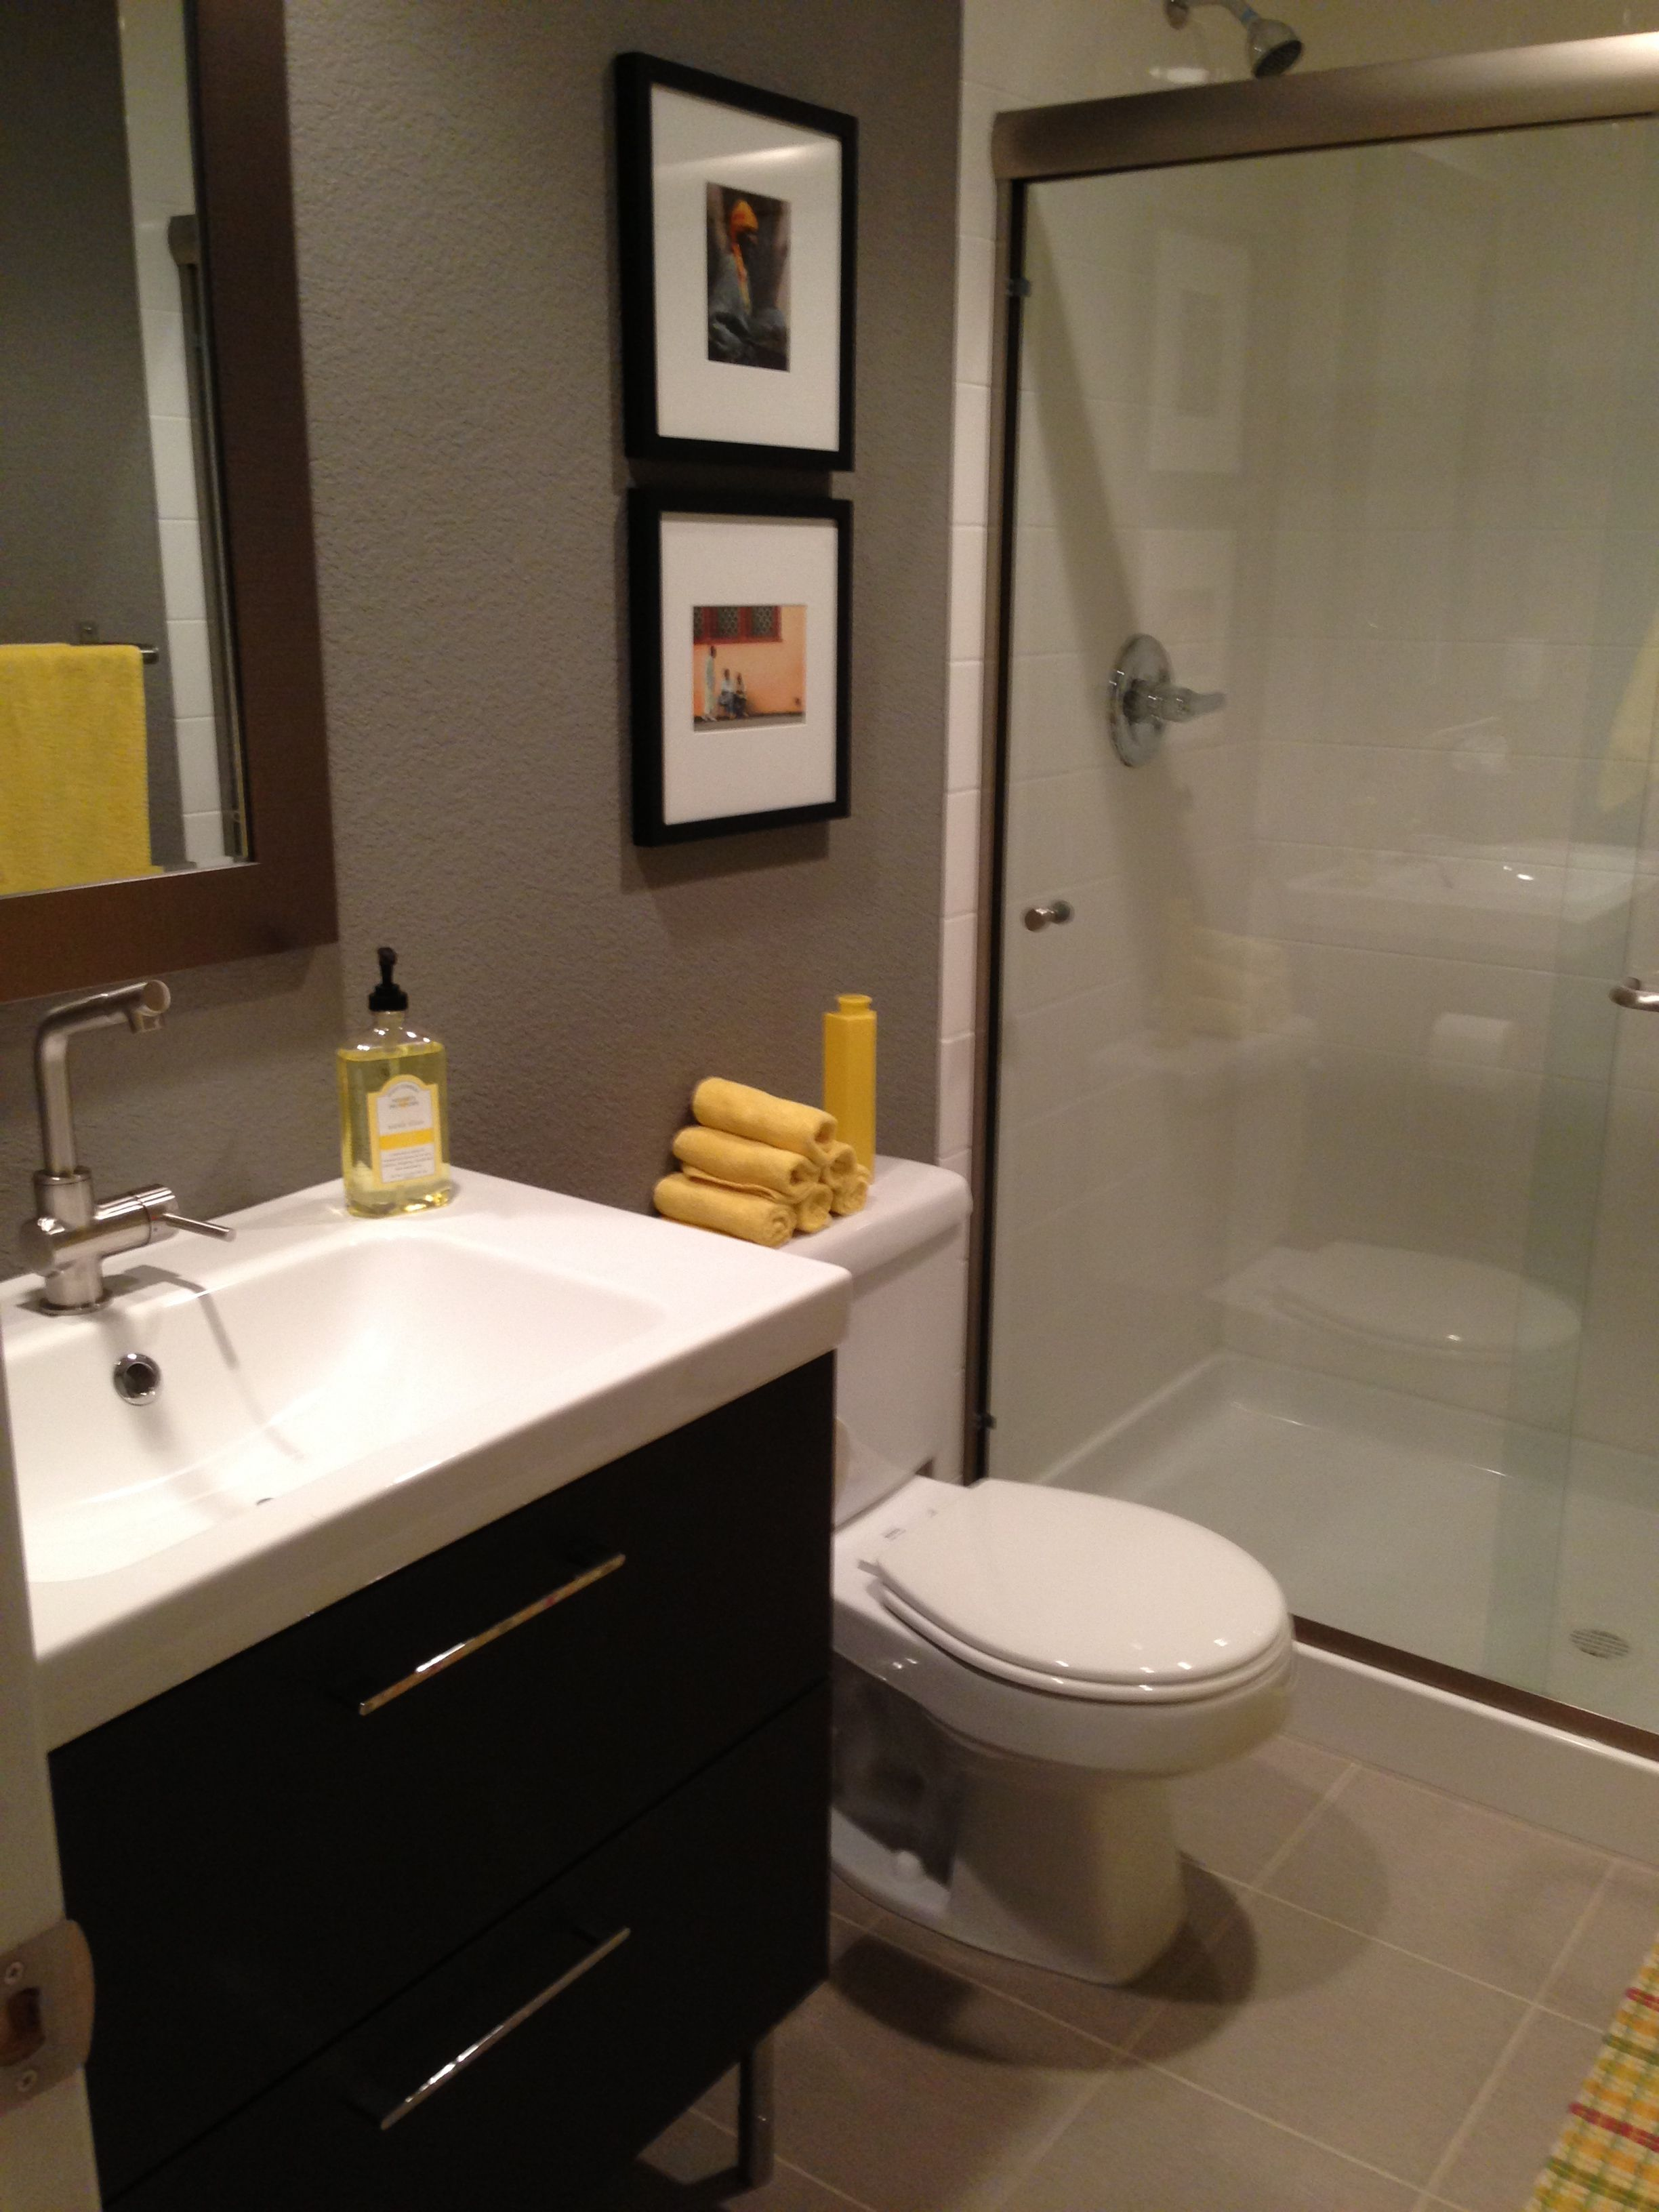 Basement bathroom our house a labor of love in for Basement bathroom flooring ideas